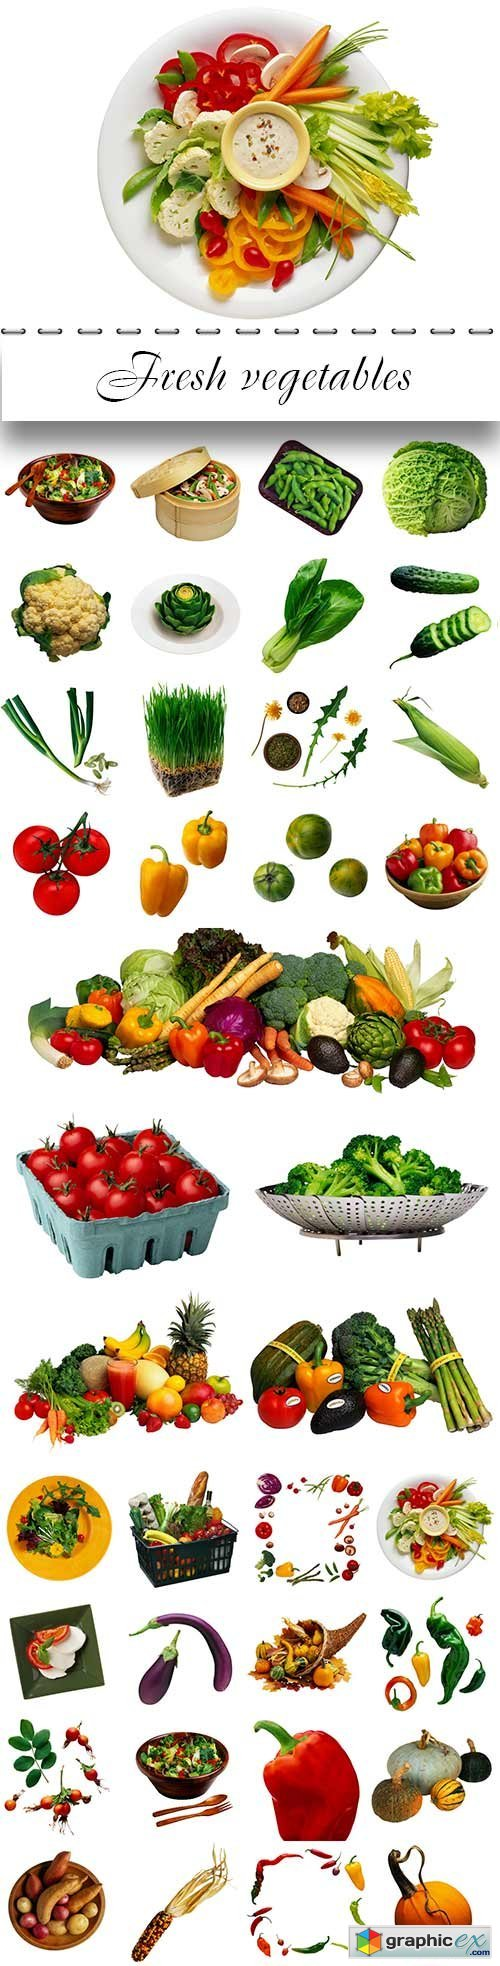 Fresh vegetables proper nutrition